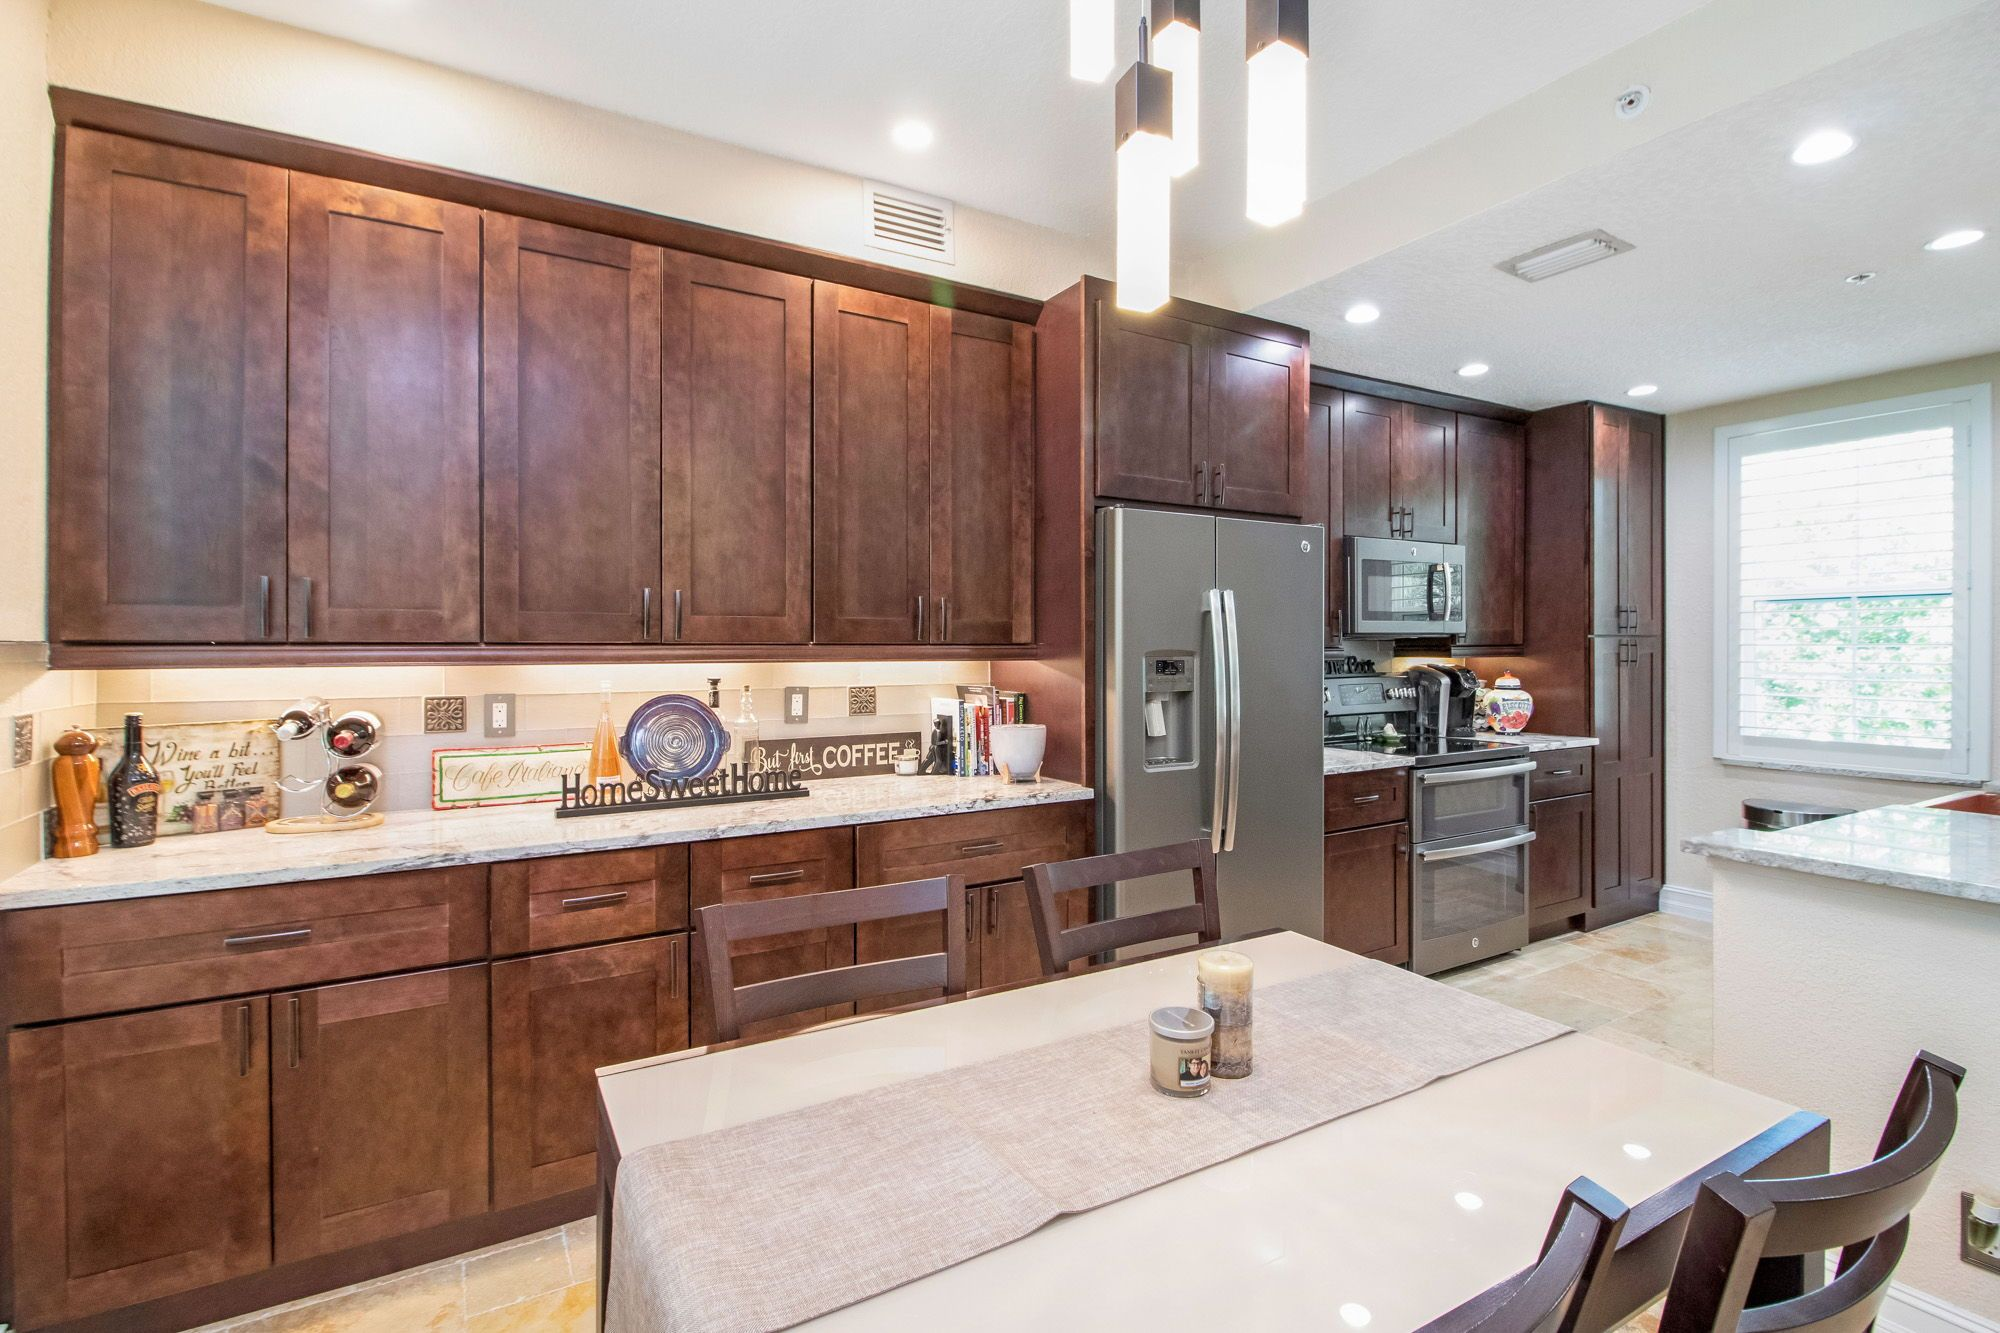 The Kitchen Is Open Concept And Has Cherry Wood Cabinets Granite